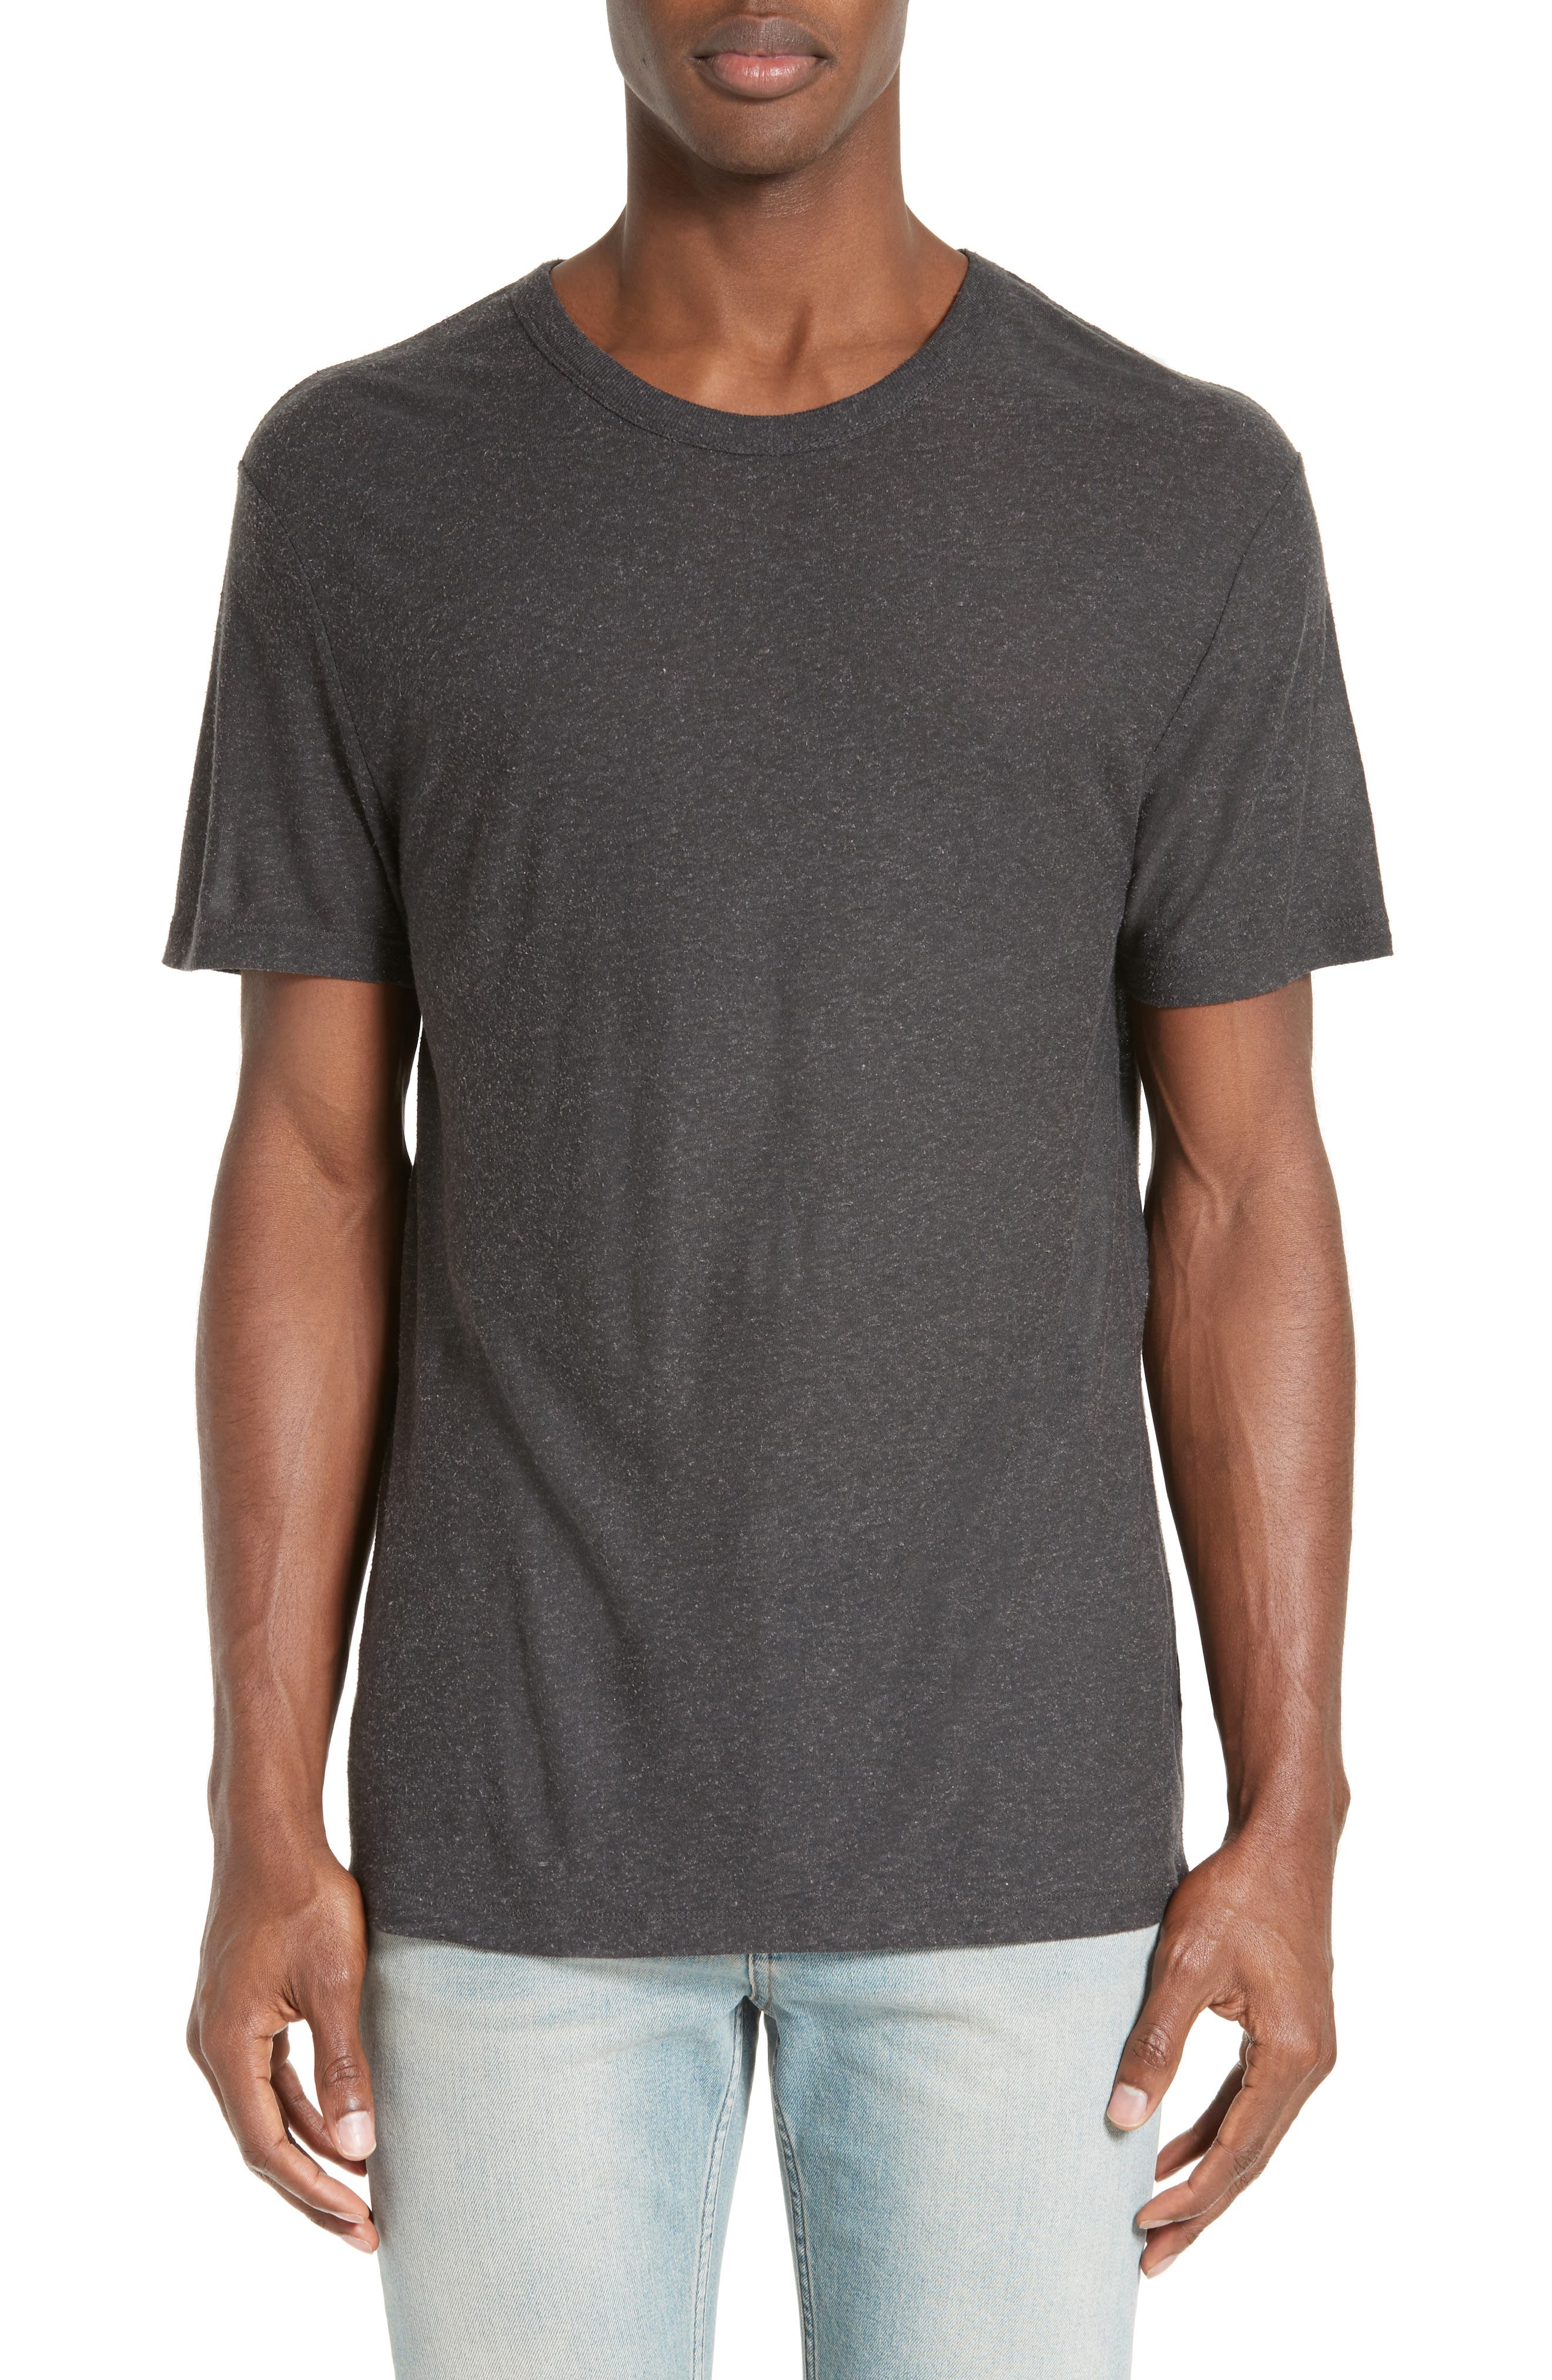 Alternate Image 1 Selected - T by Alexander Wang 'Pilly' Crewneck T-Shirt